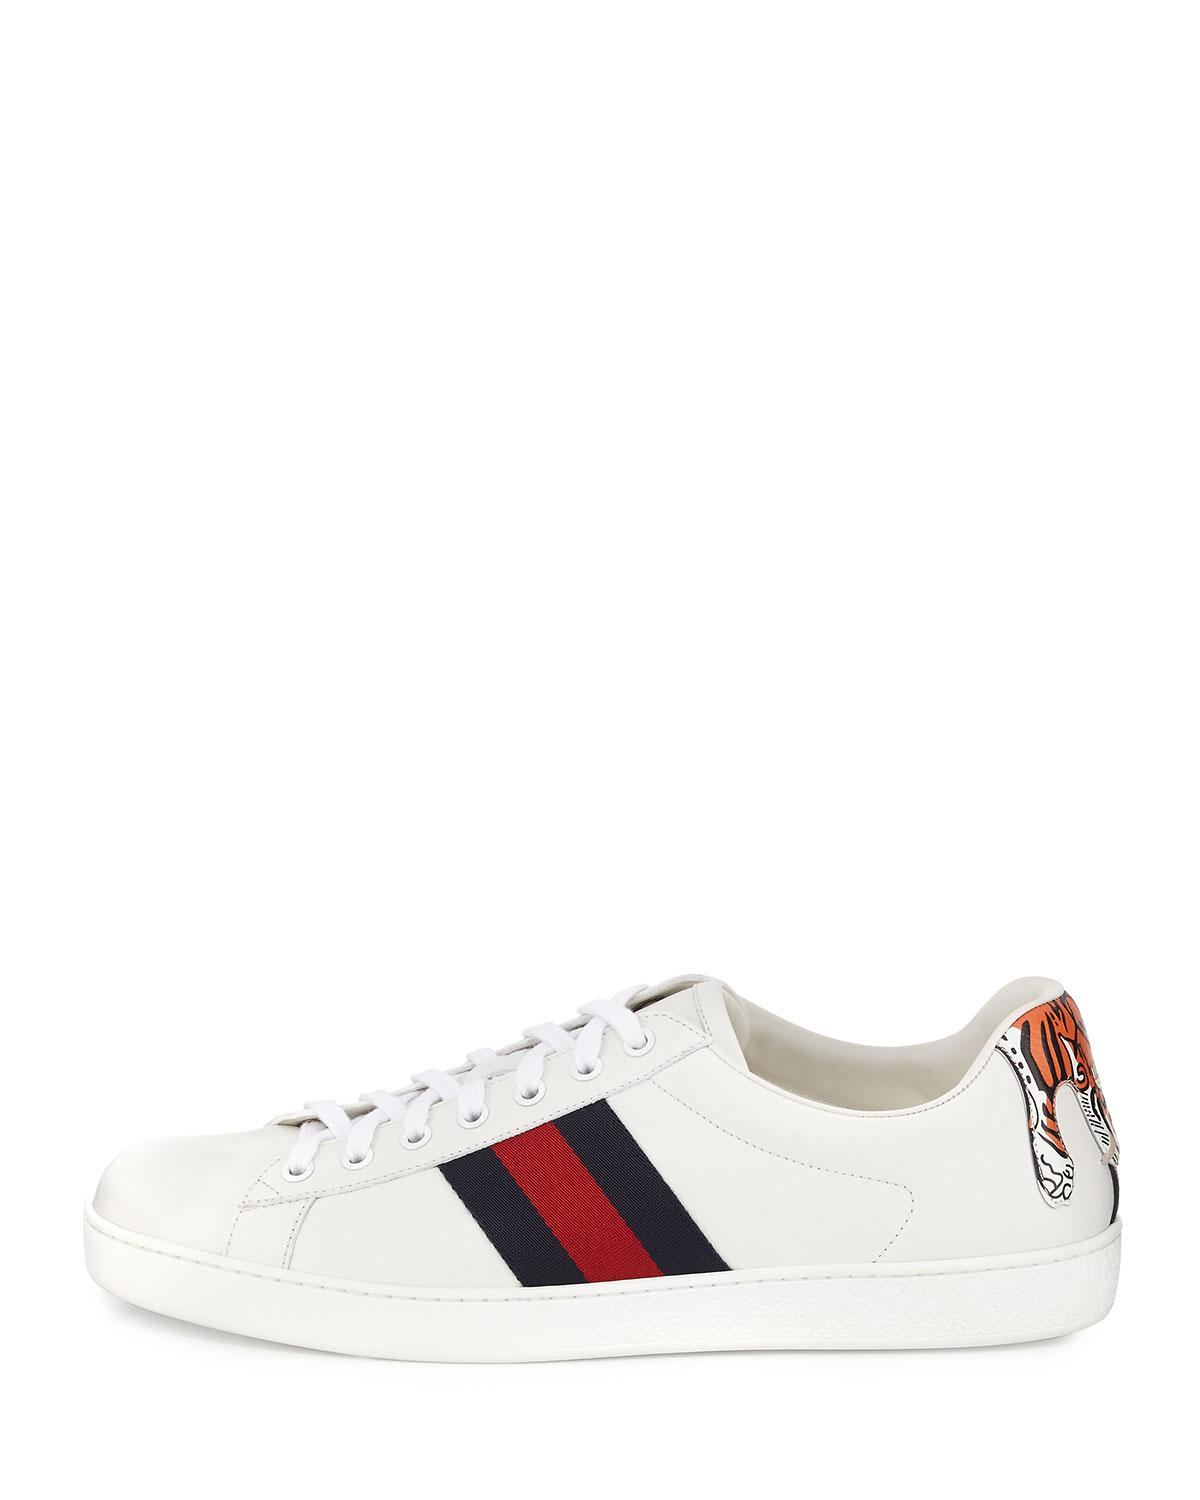 37ea64b1f39 Lyst - Gucci New Ace Hanging Tiger Leather Low-top Sneaker in White